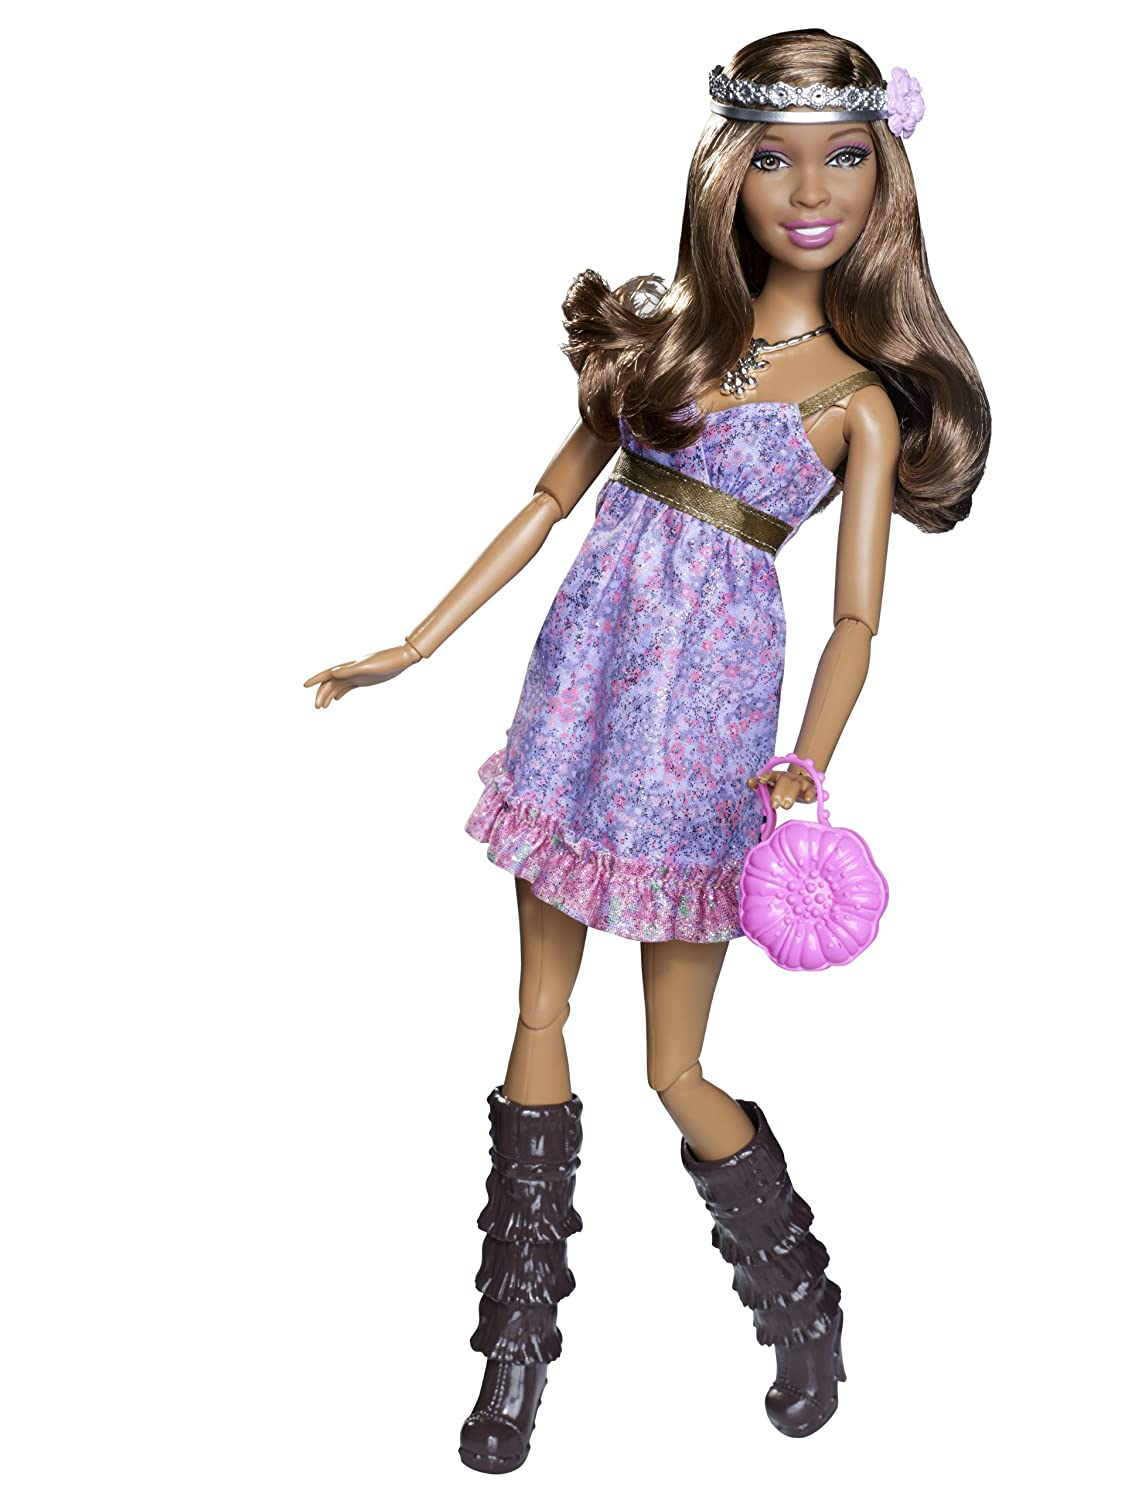 Barbie - T7410 - Muñeca Maniquí Fashionista - Mix  Styles - Arsty